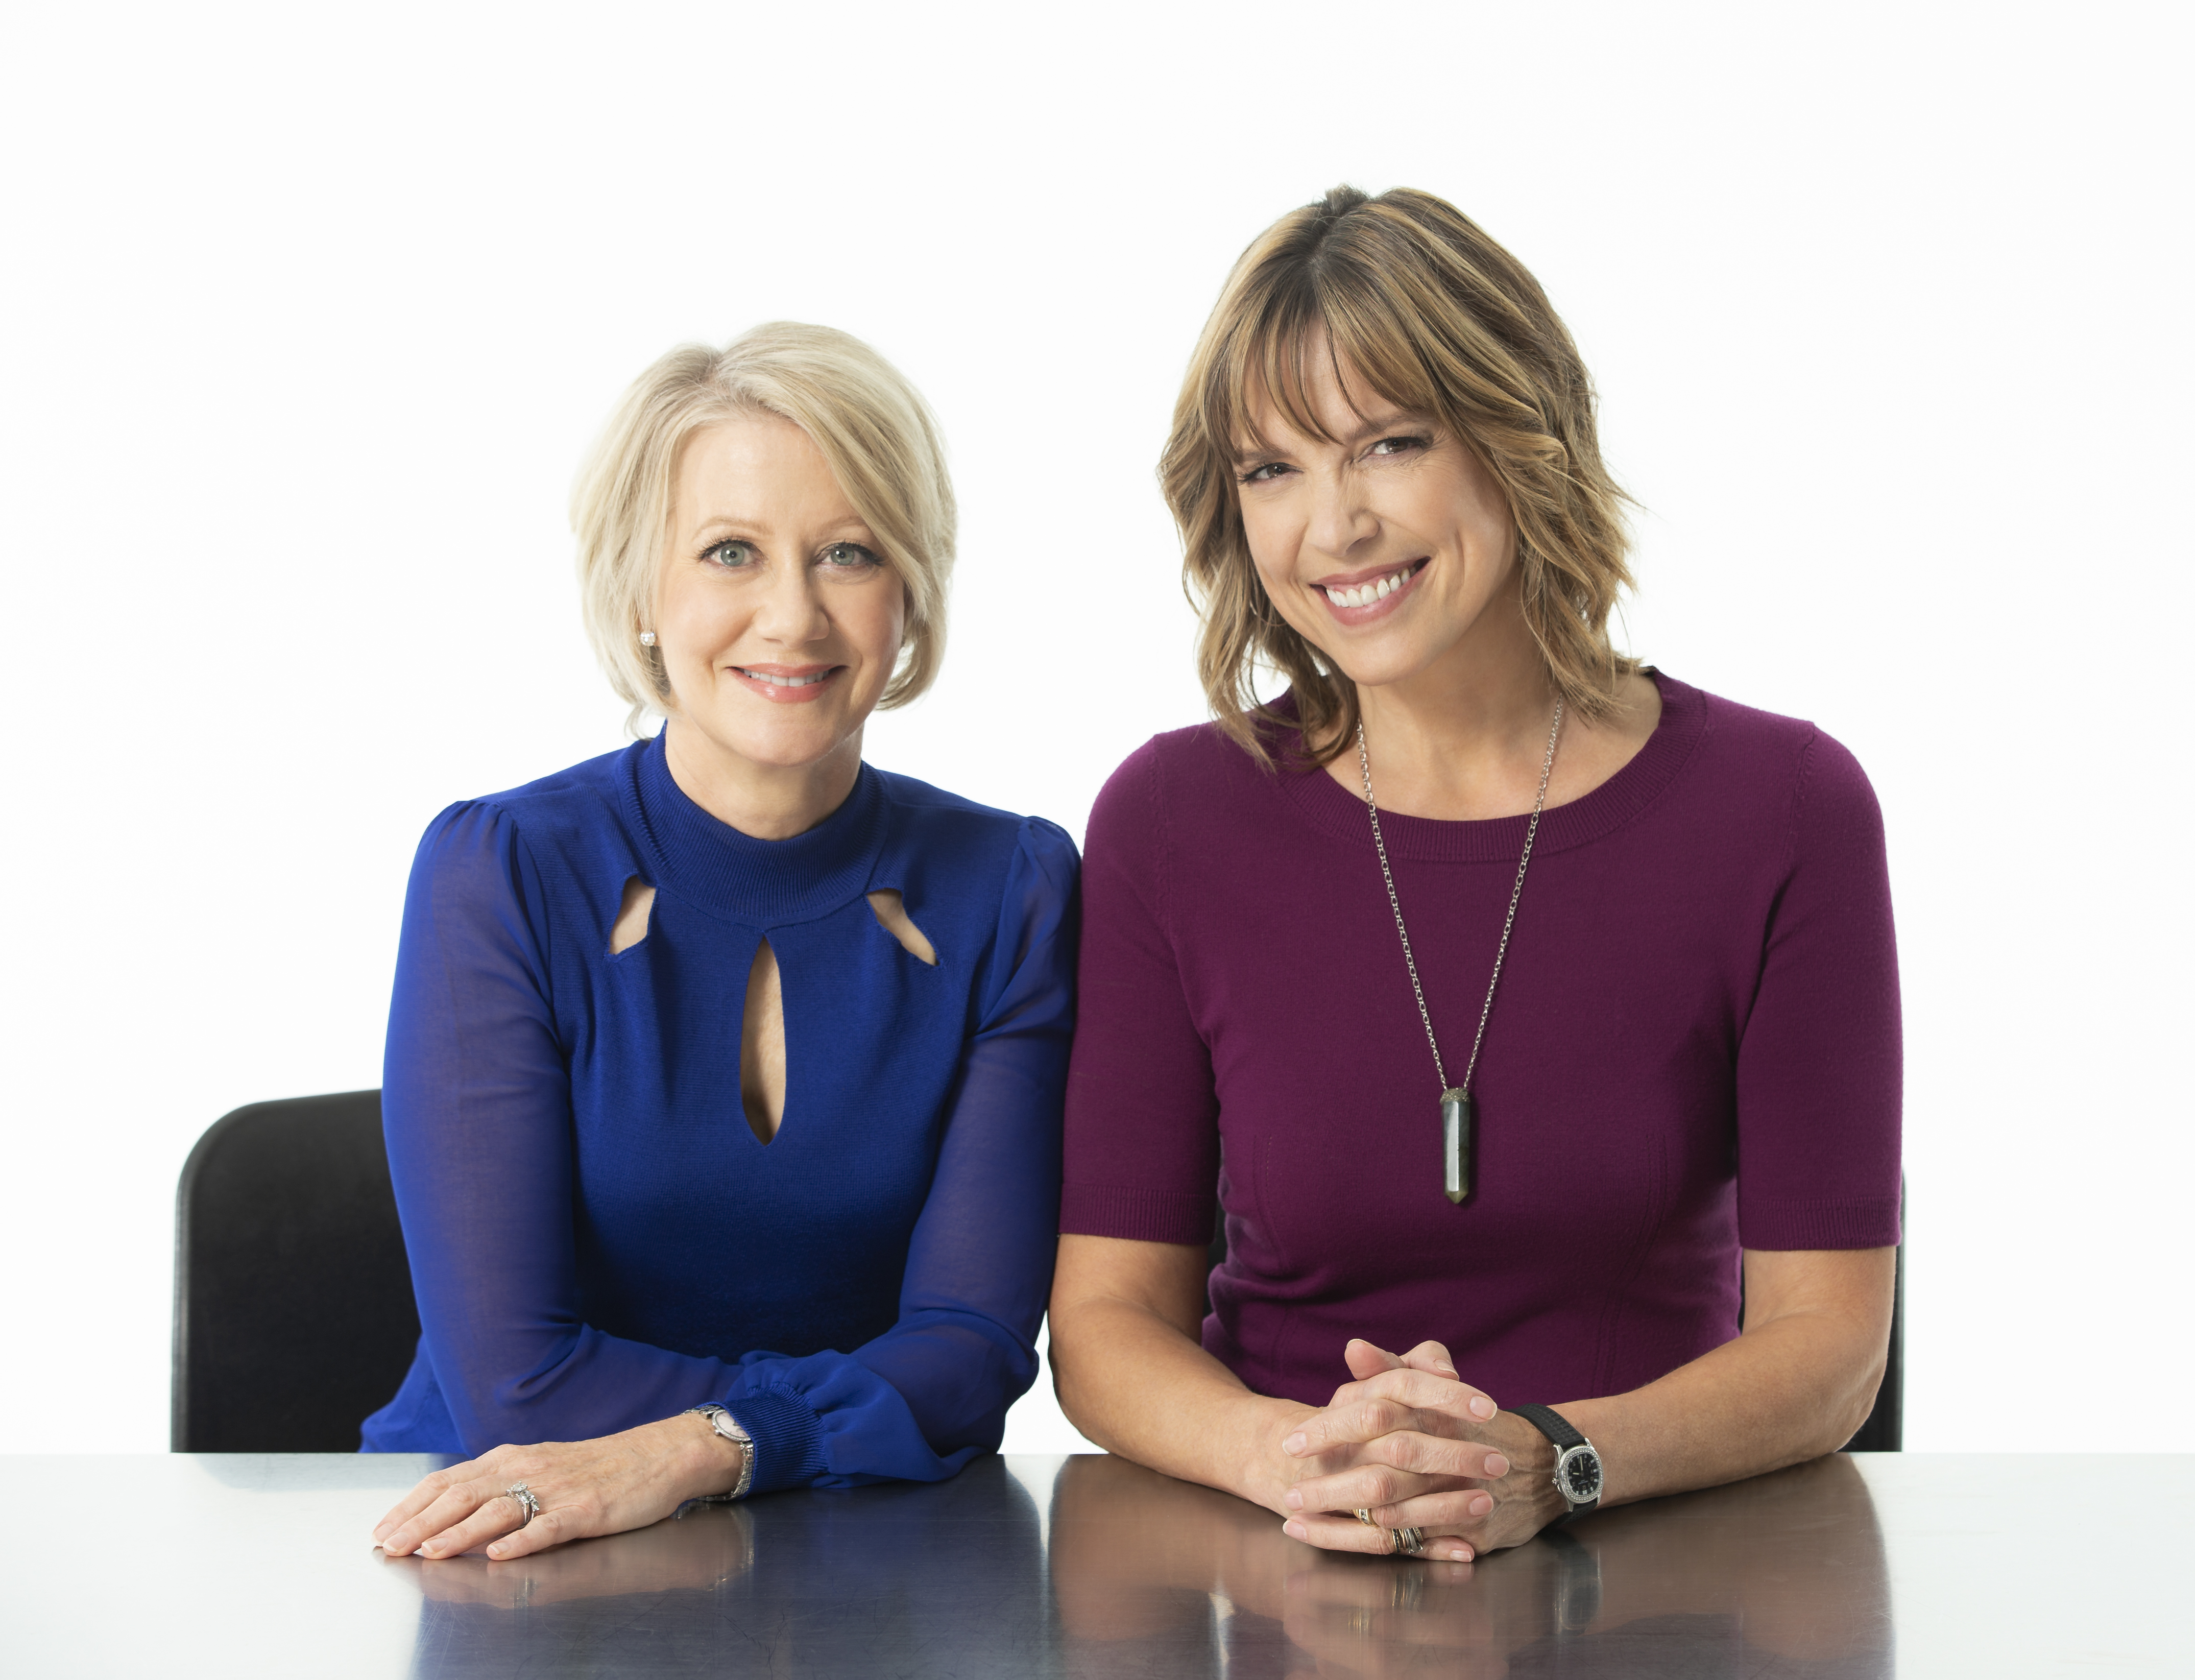 Amazon Prime Video announced that Hannah Storm and Andrea Kremer 24dff4e1e